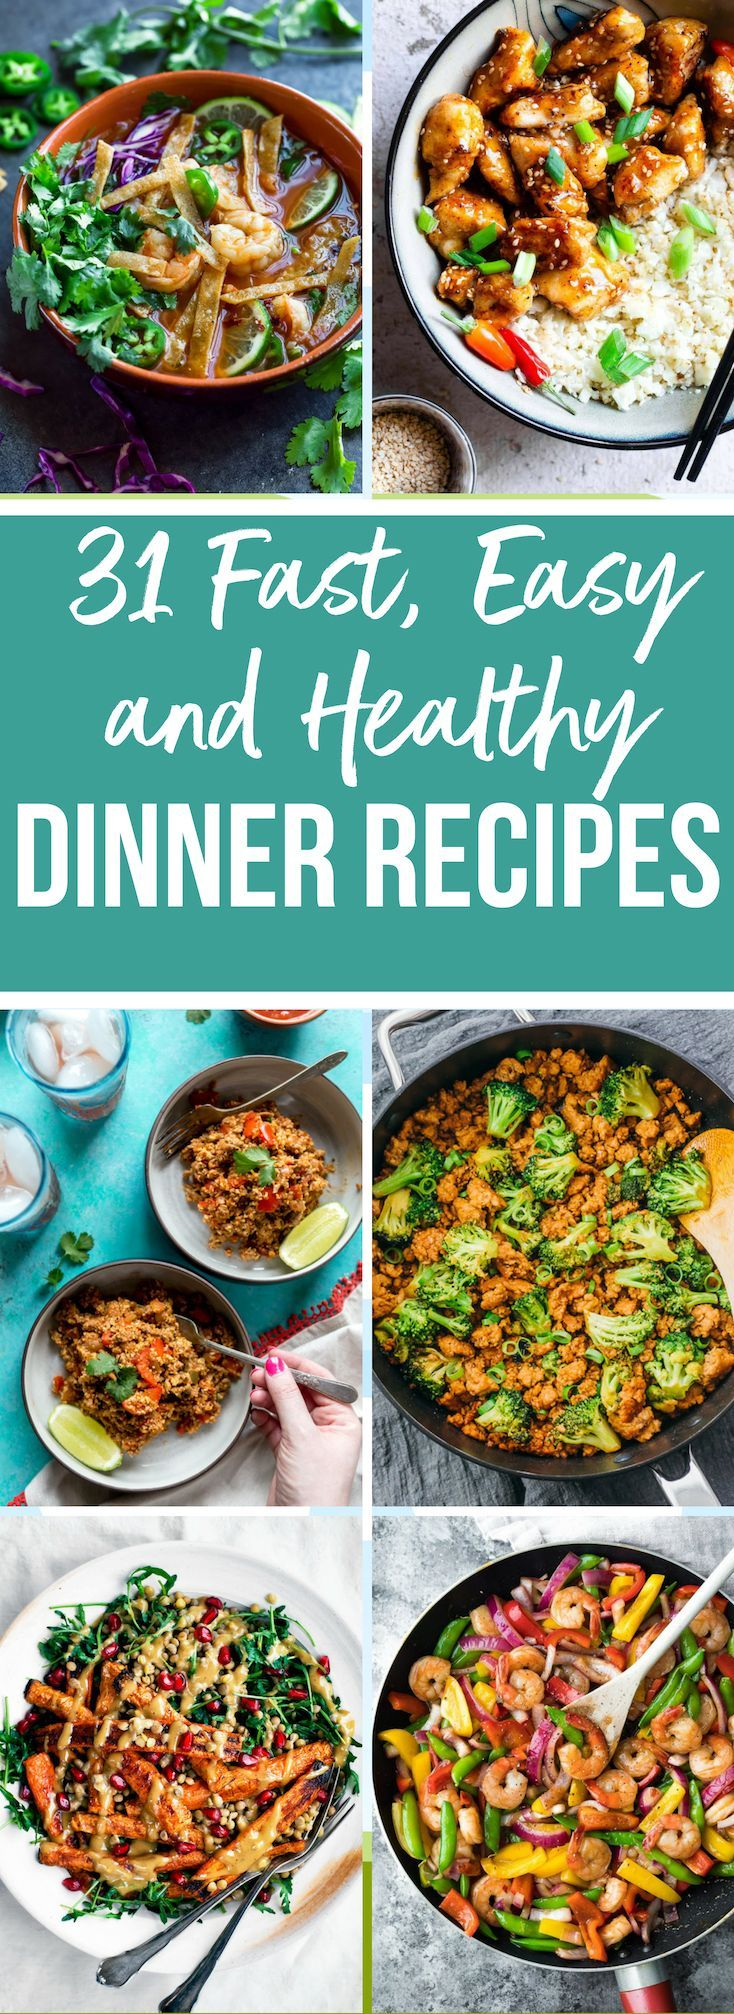 31 Fast Healthy Dinner recipes for the New year images